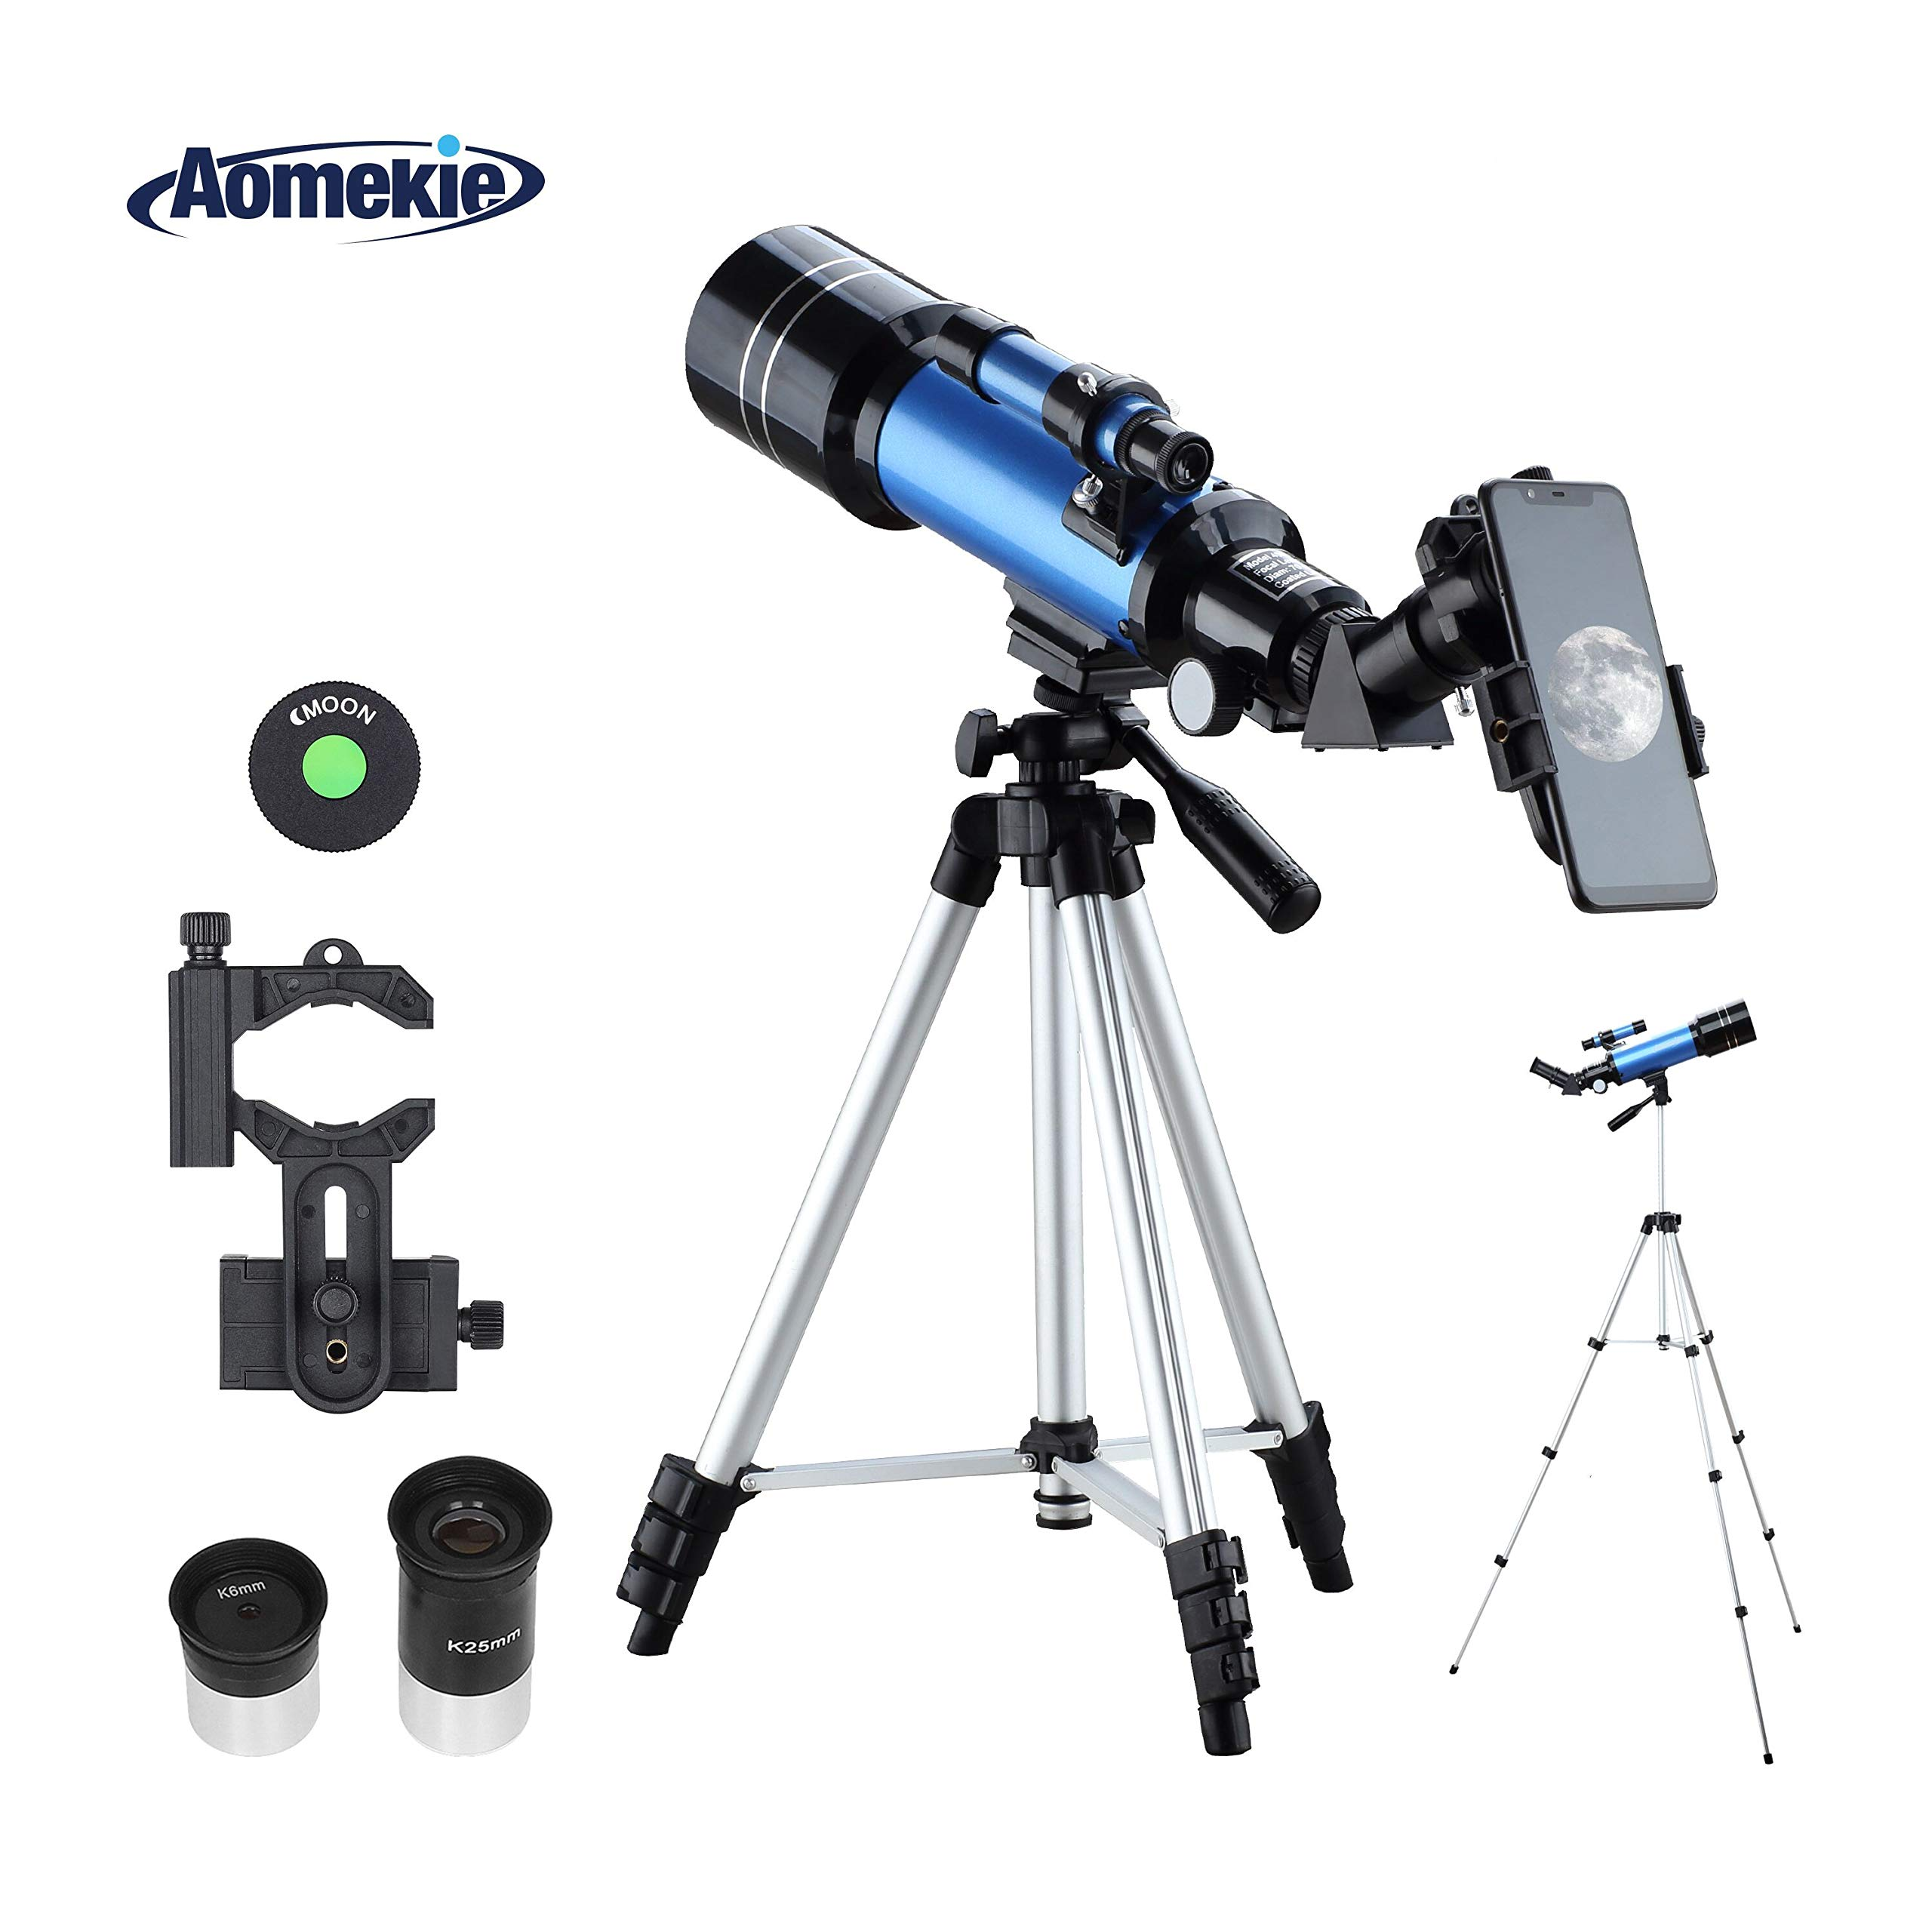 Aomekie Kids Telescope for Adults Astronomy Beginners 70mm Refractor Telescopes with Adjustable 51inch Tripod Phone Adapter Finderscope Erect-Image Diagonal and Moon Filter by AOMEKIE